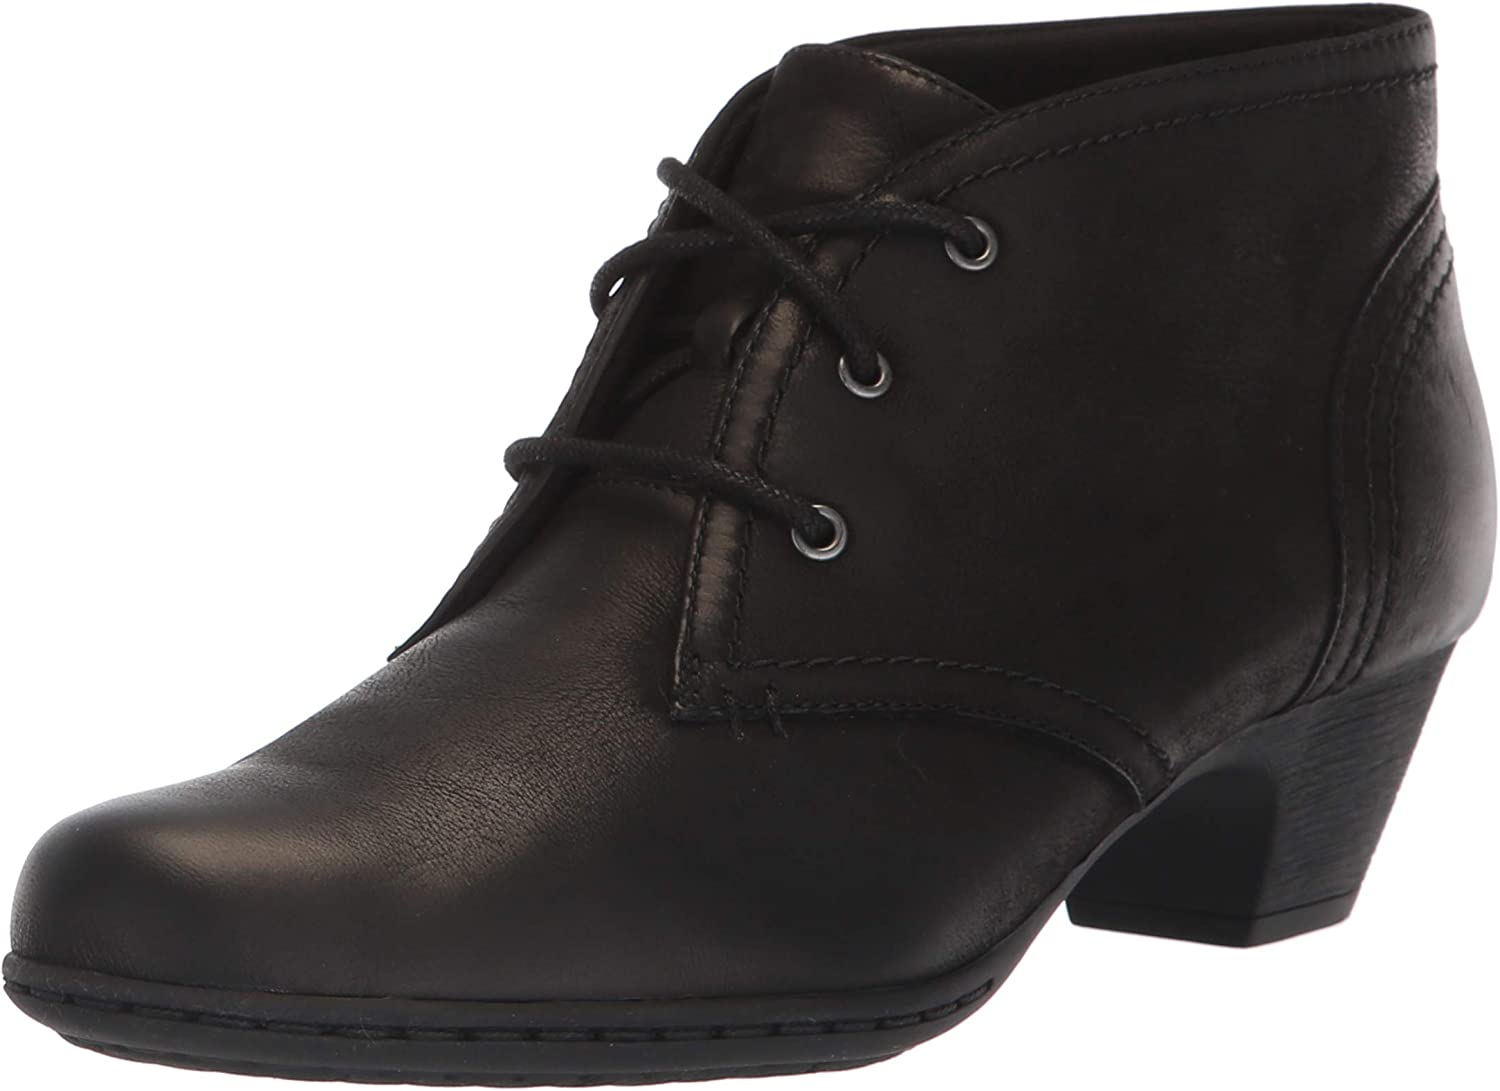 Rockport Womens Brynn Chukka Bootie Ankle Boot